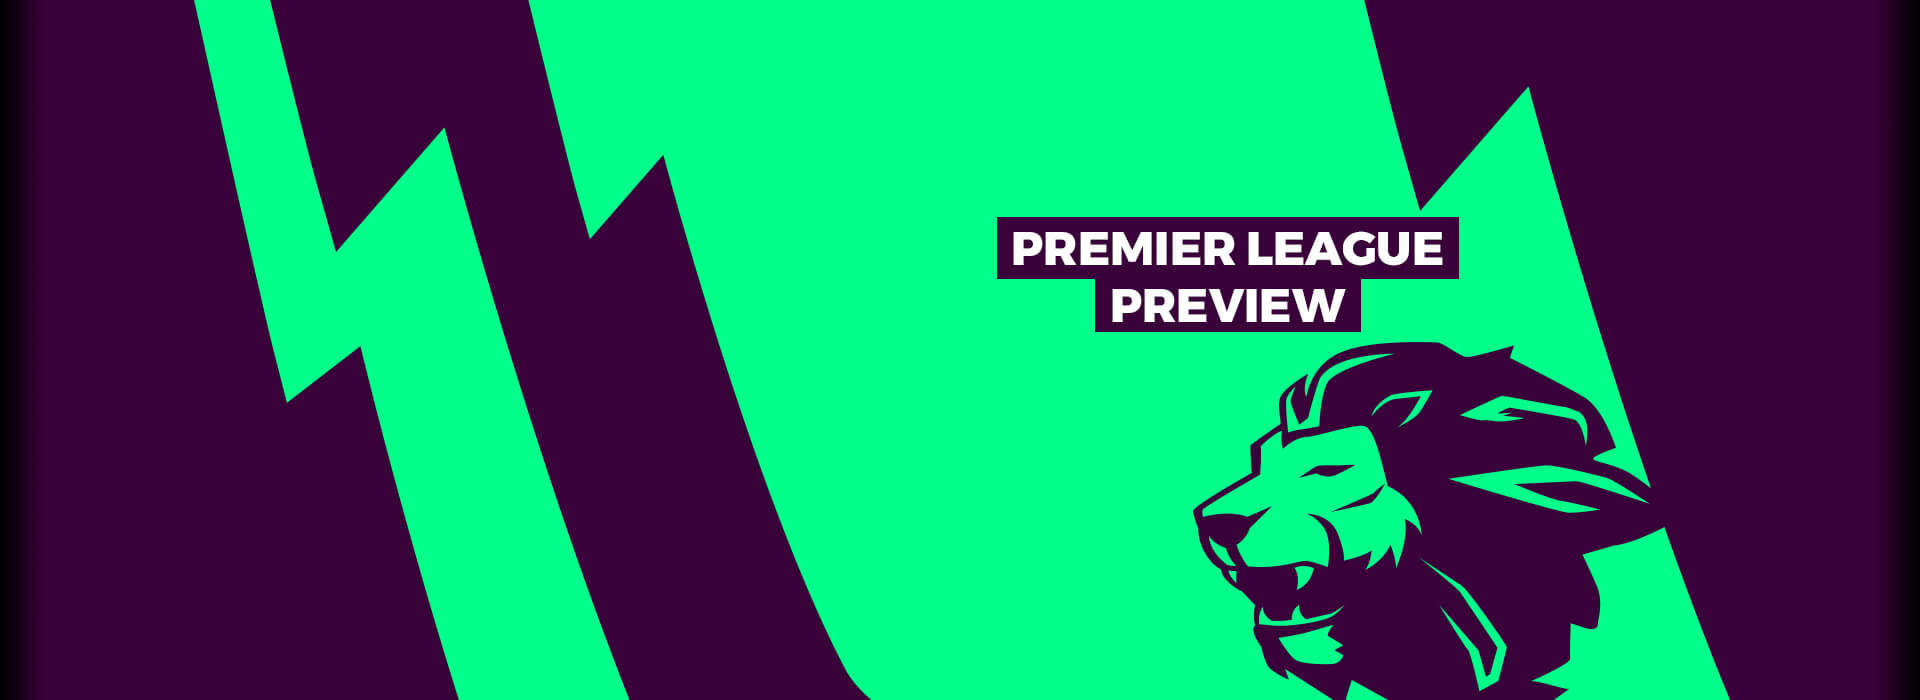 Premier League Season Preview